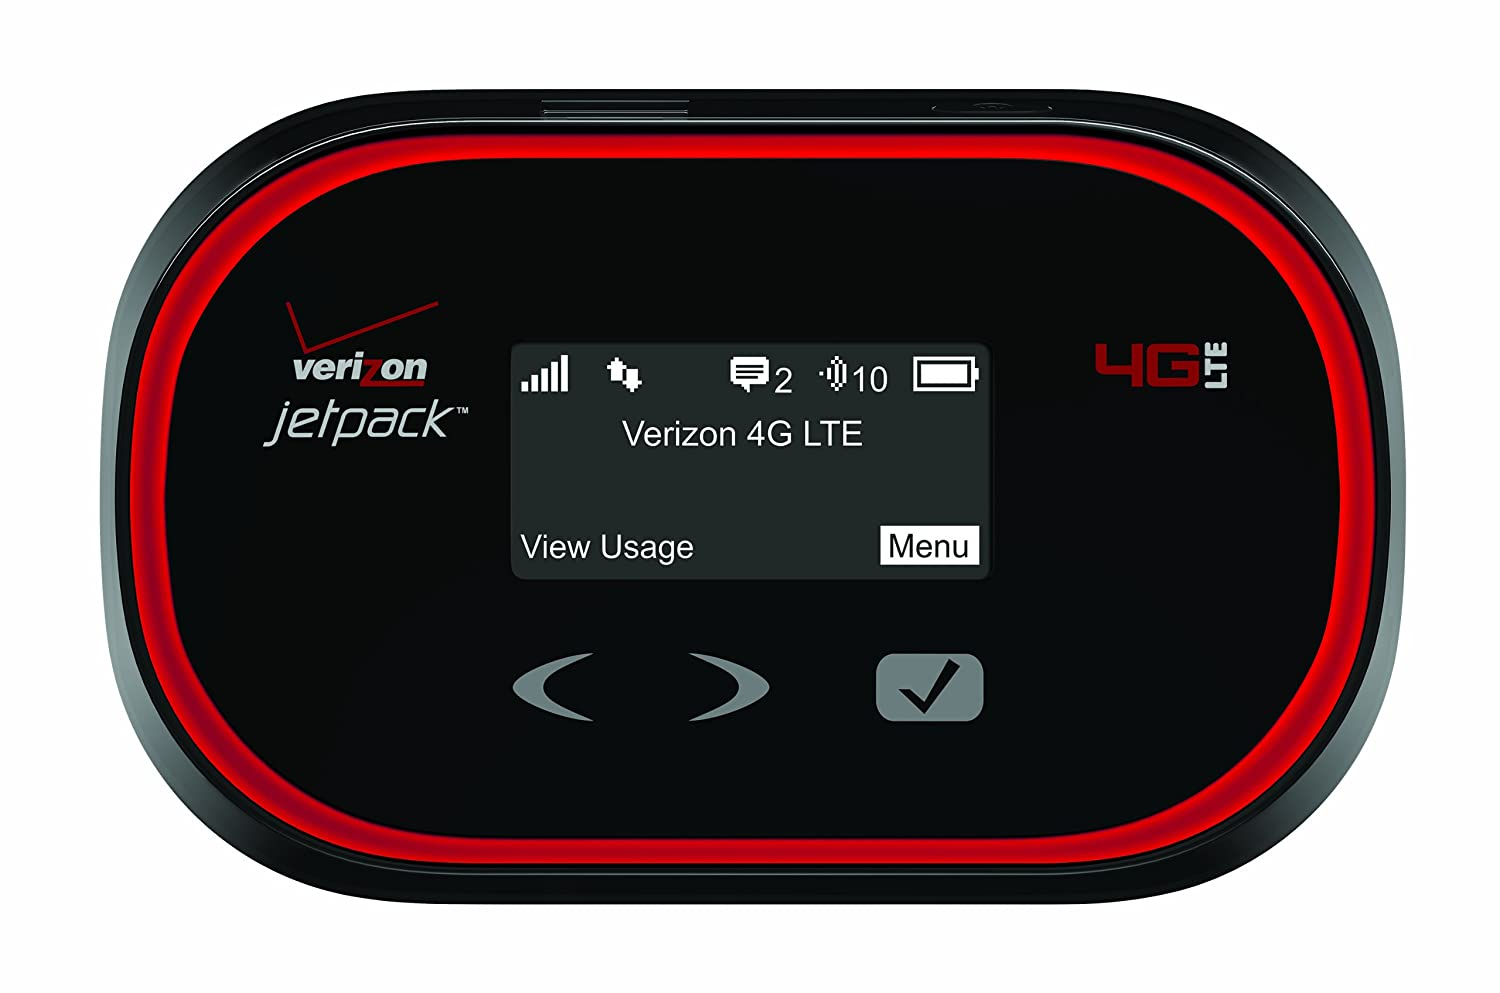 Verizon MiFi 5510L Jetpack 4G LTE Mobile Hotspot (Verizon Wireless)